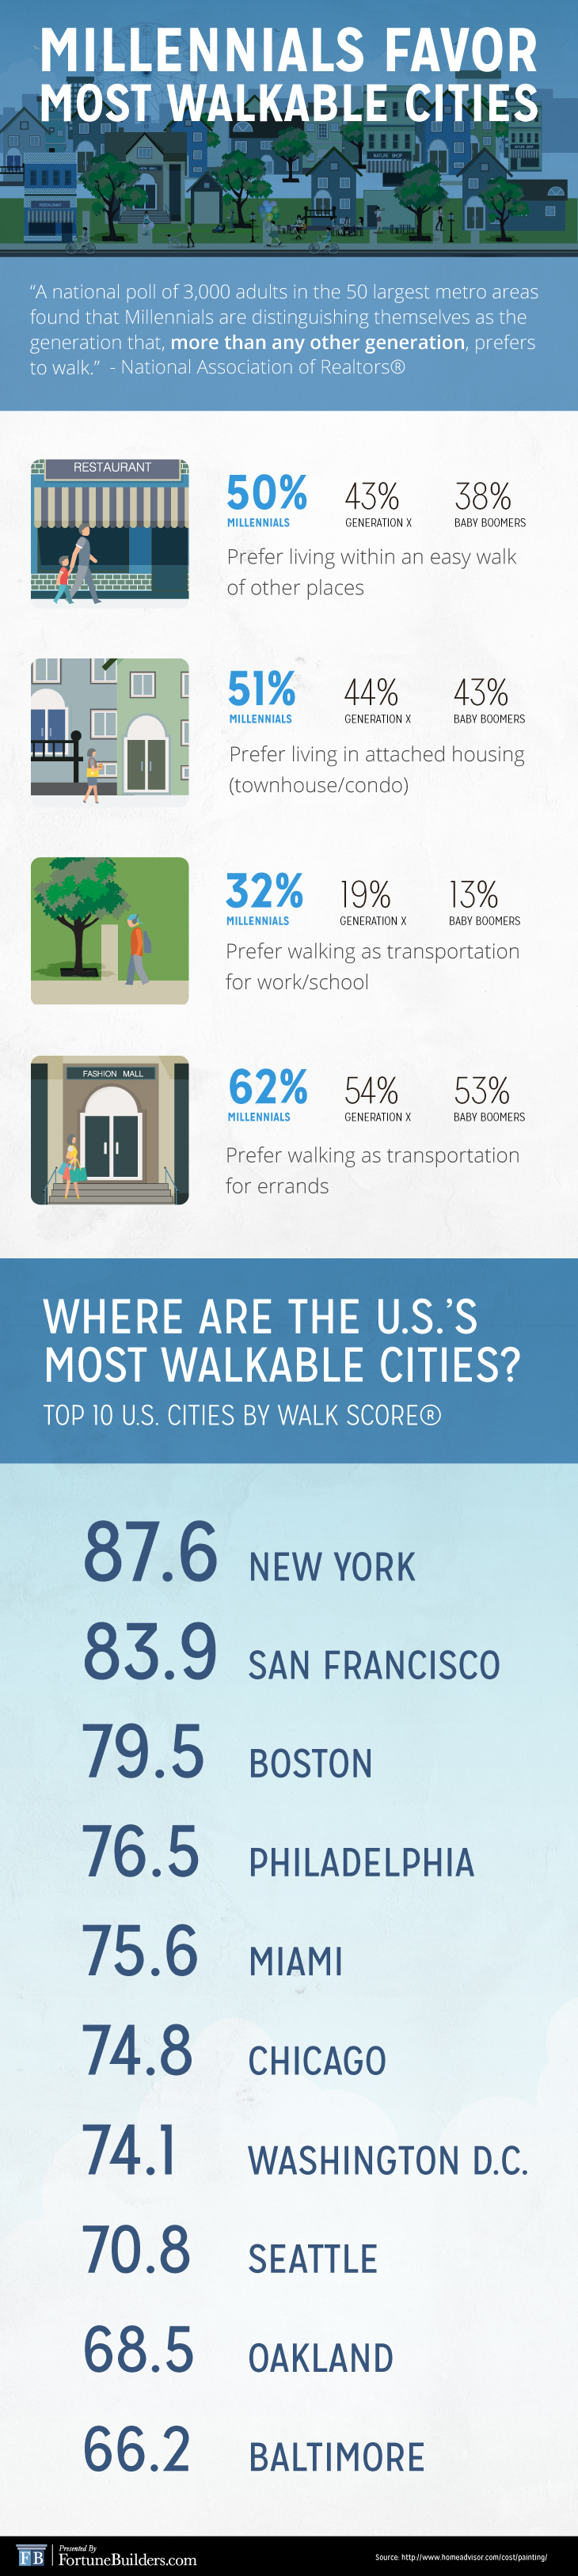 Millennials like cities with great walkability